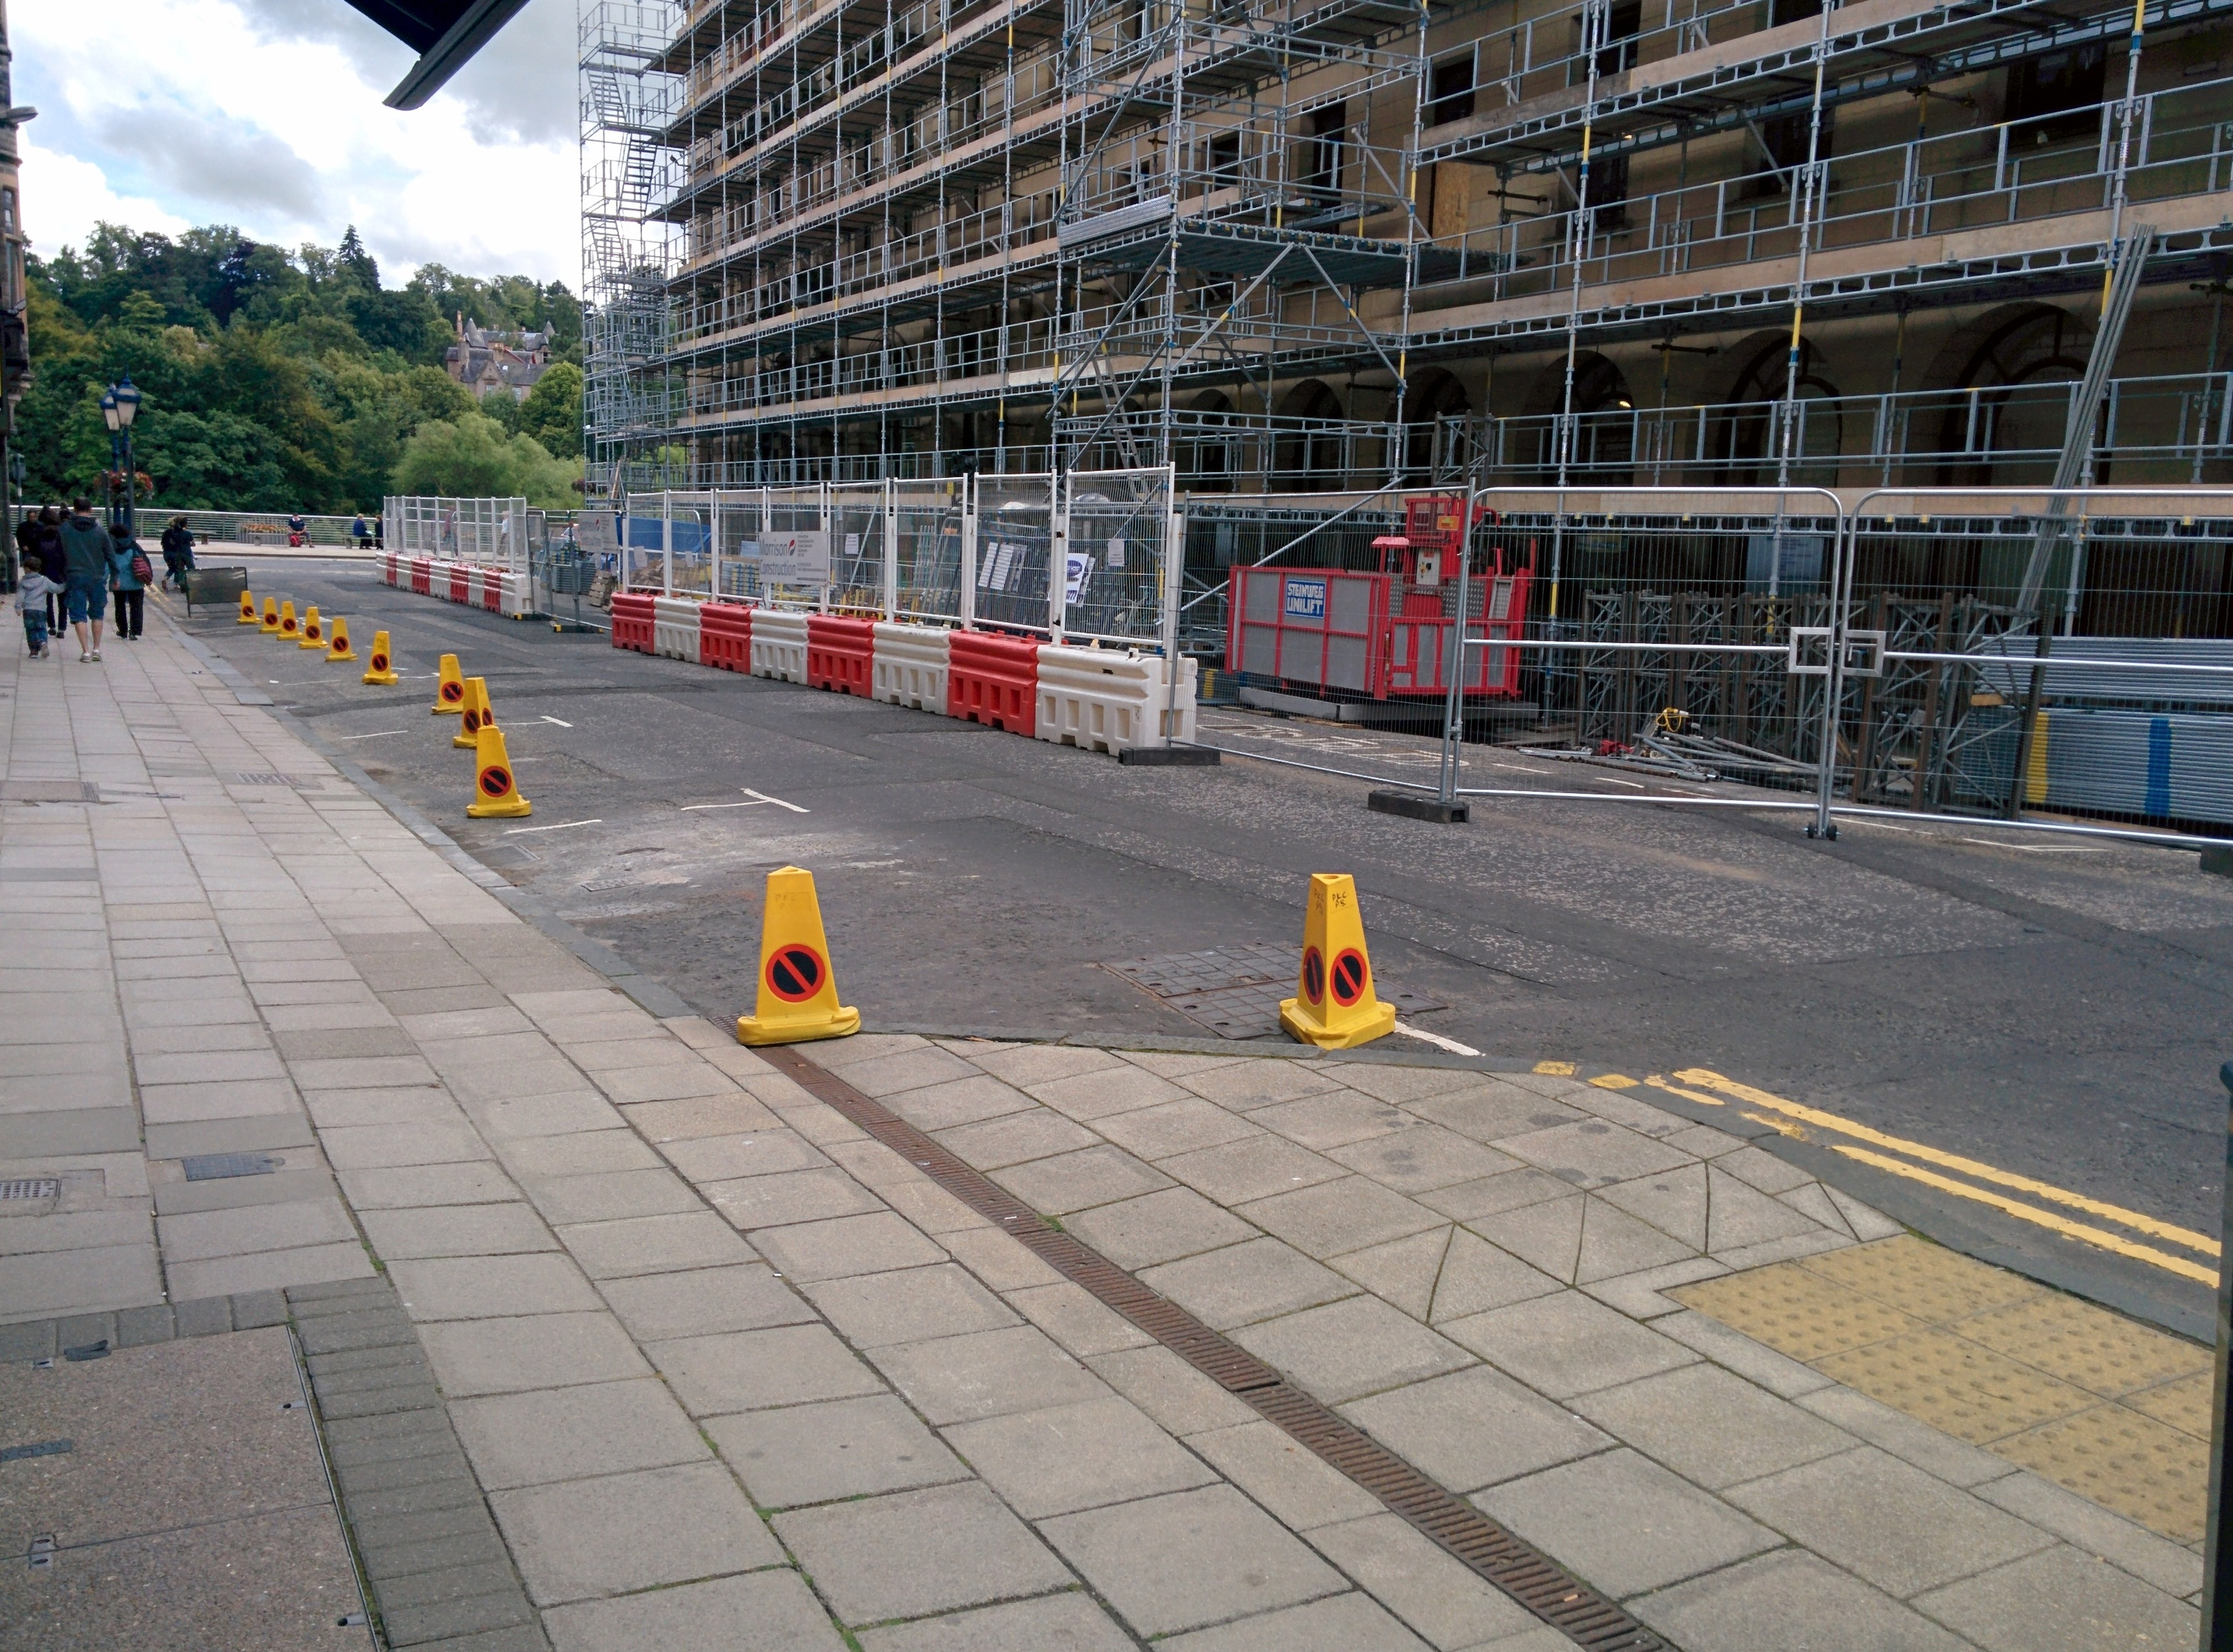 Work is ongoing at the headquarters of Perth and Kinross Council.